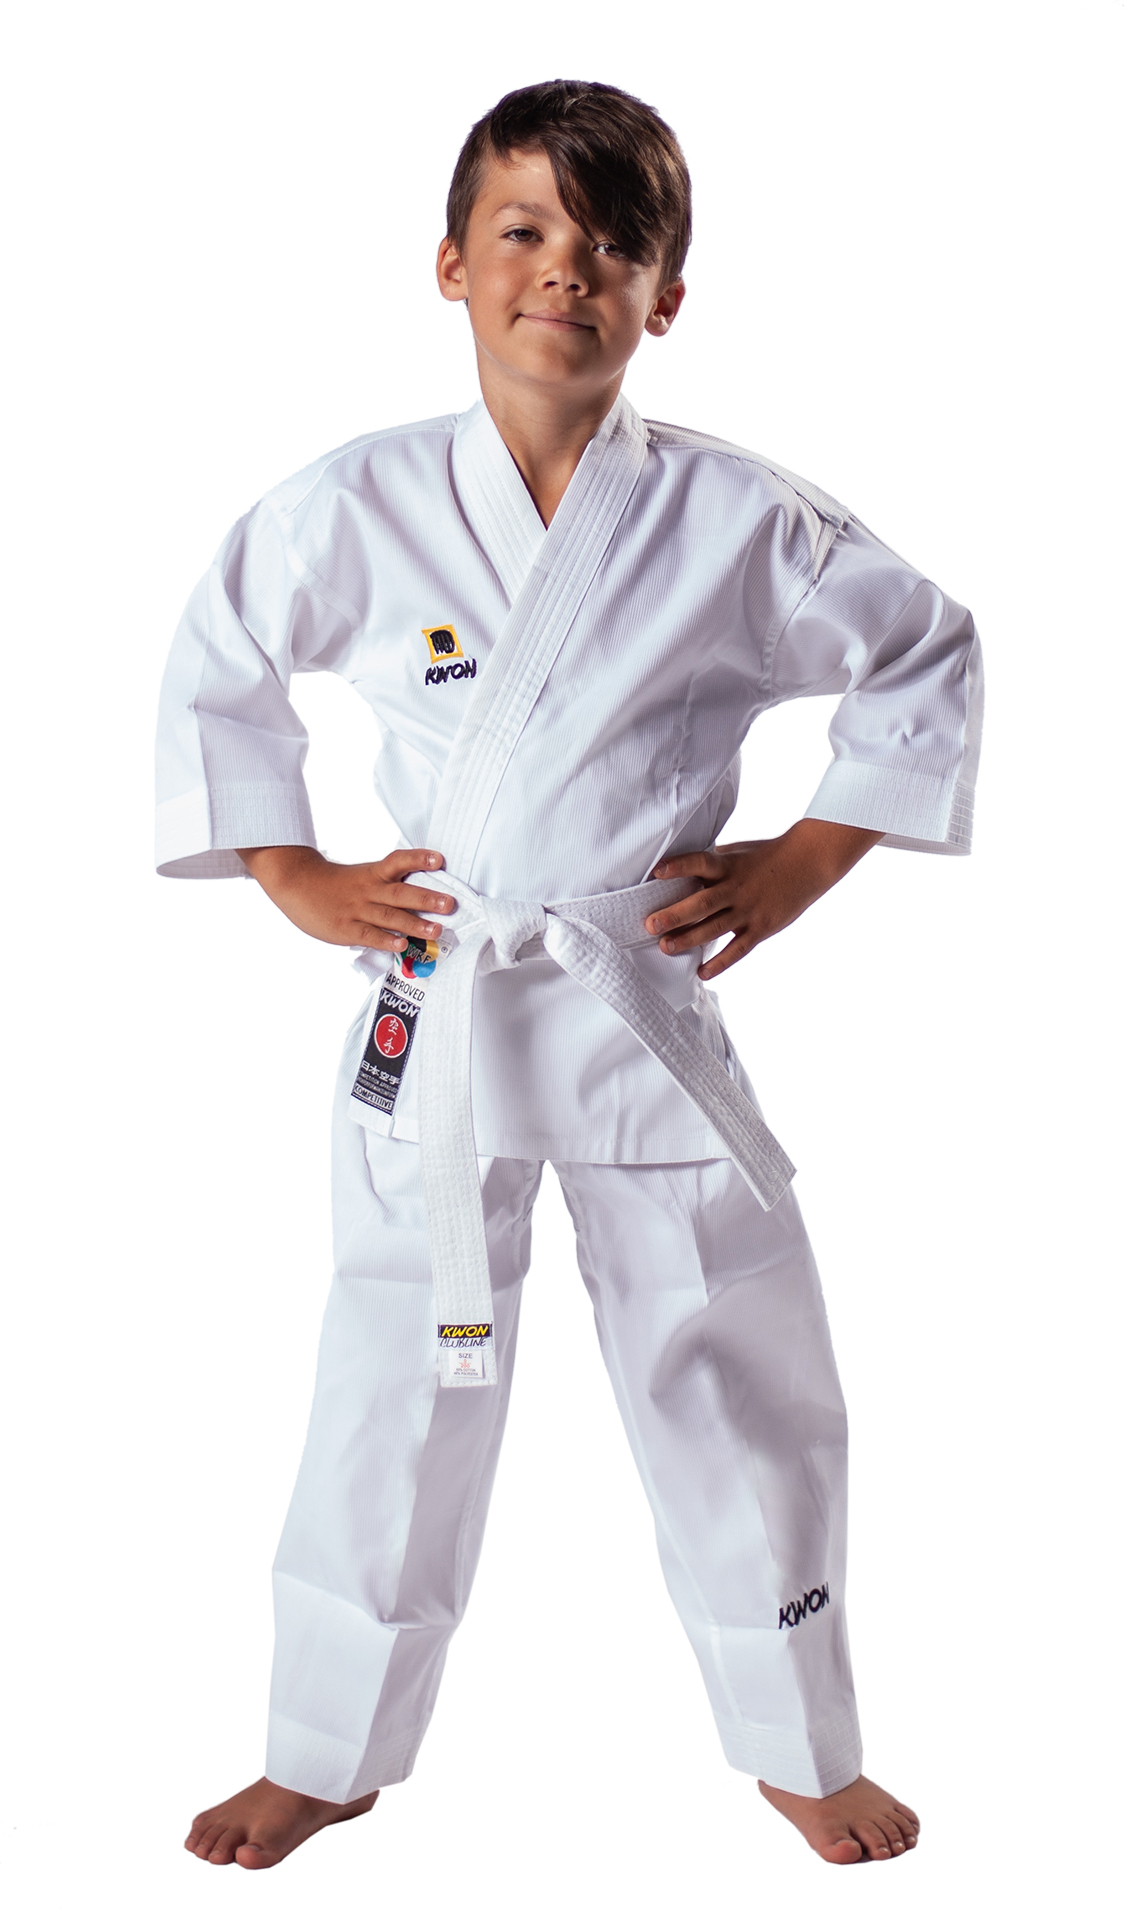 6fcdbeba4 Karate Uniform Competitive Asian Cut